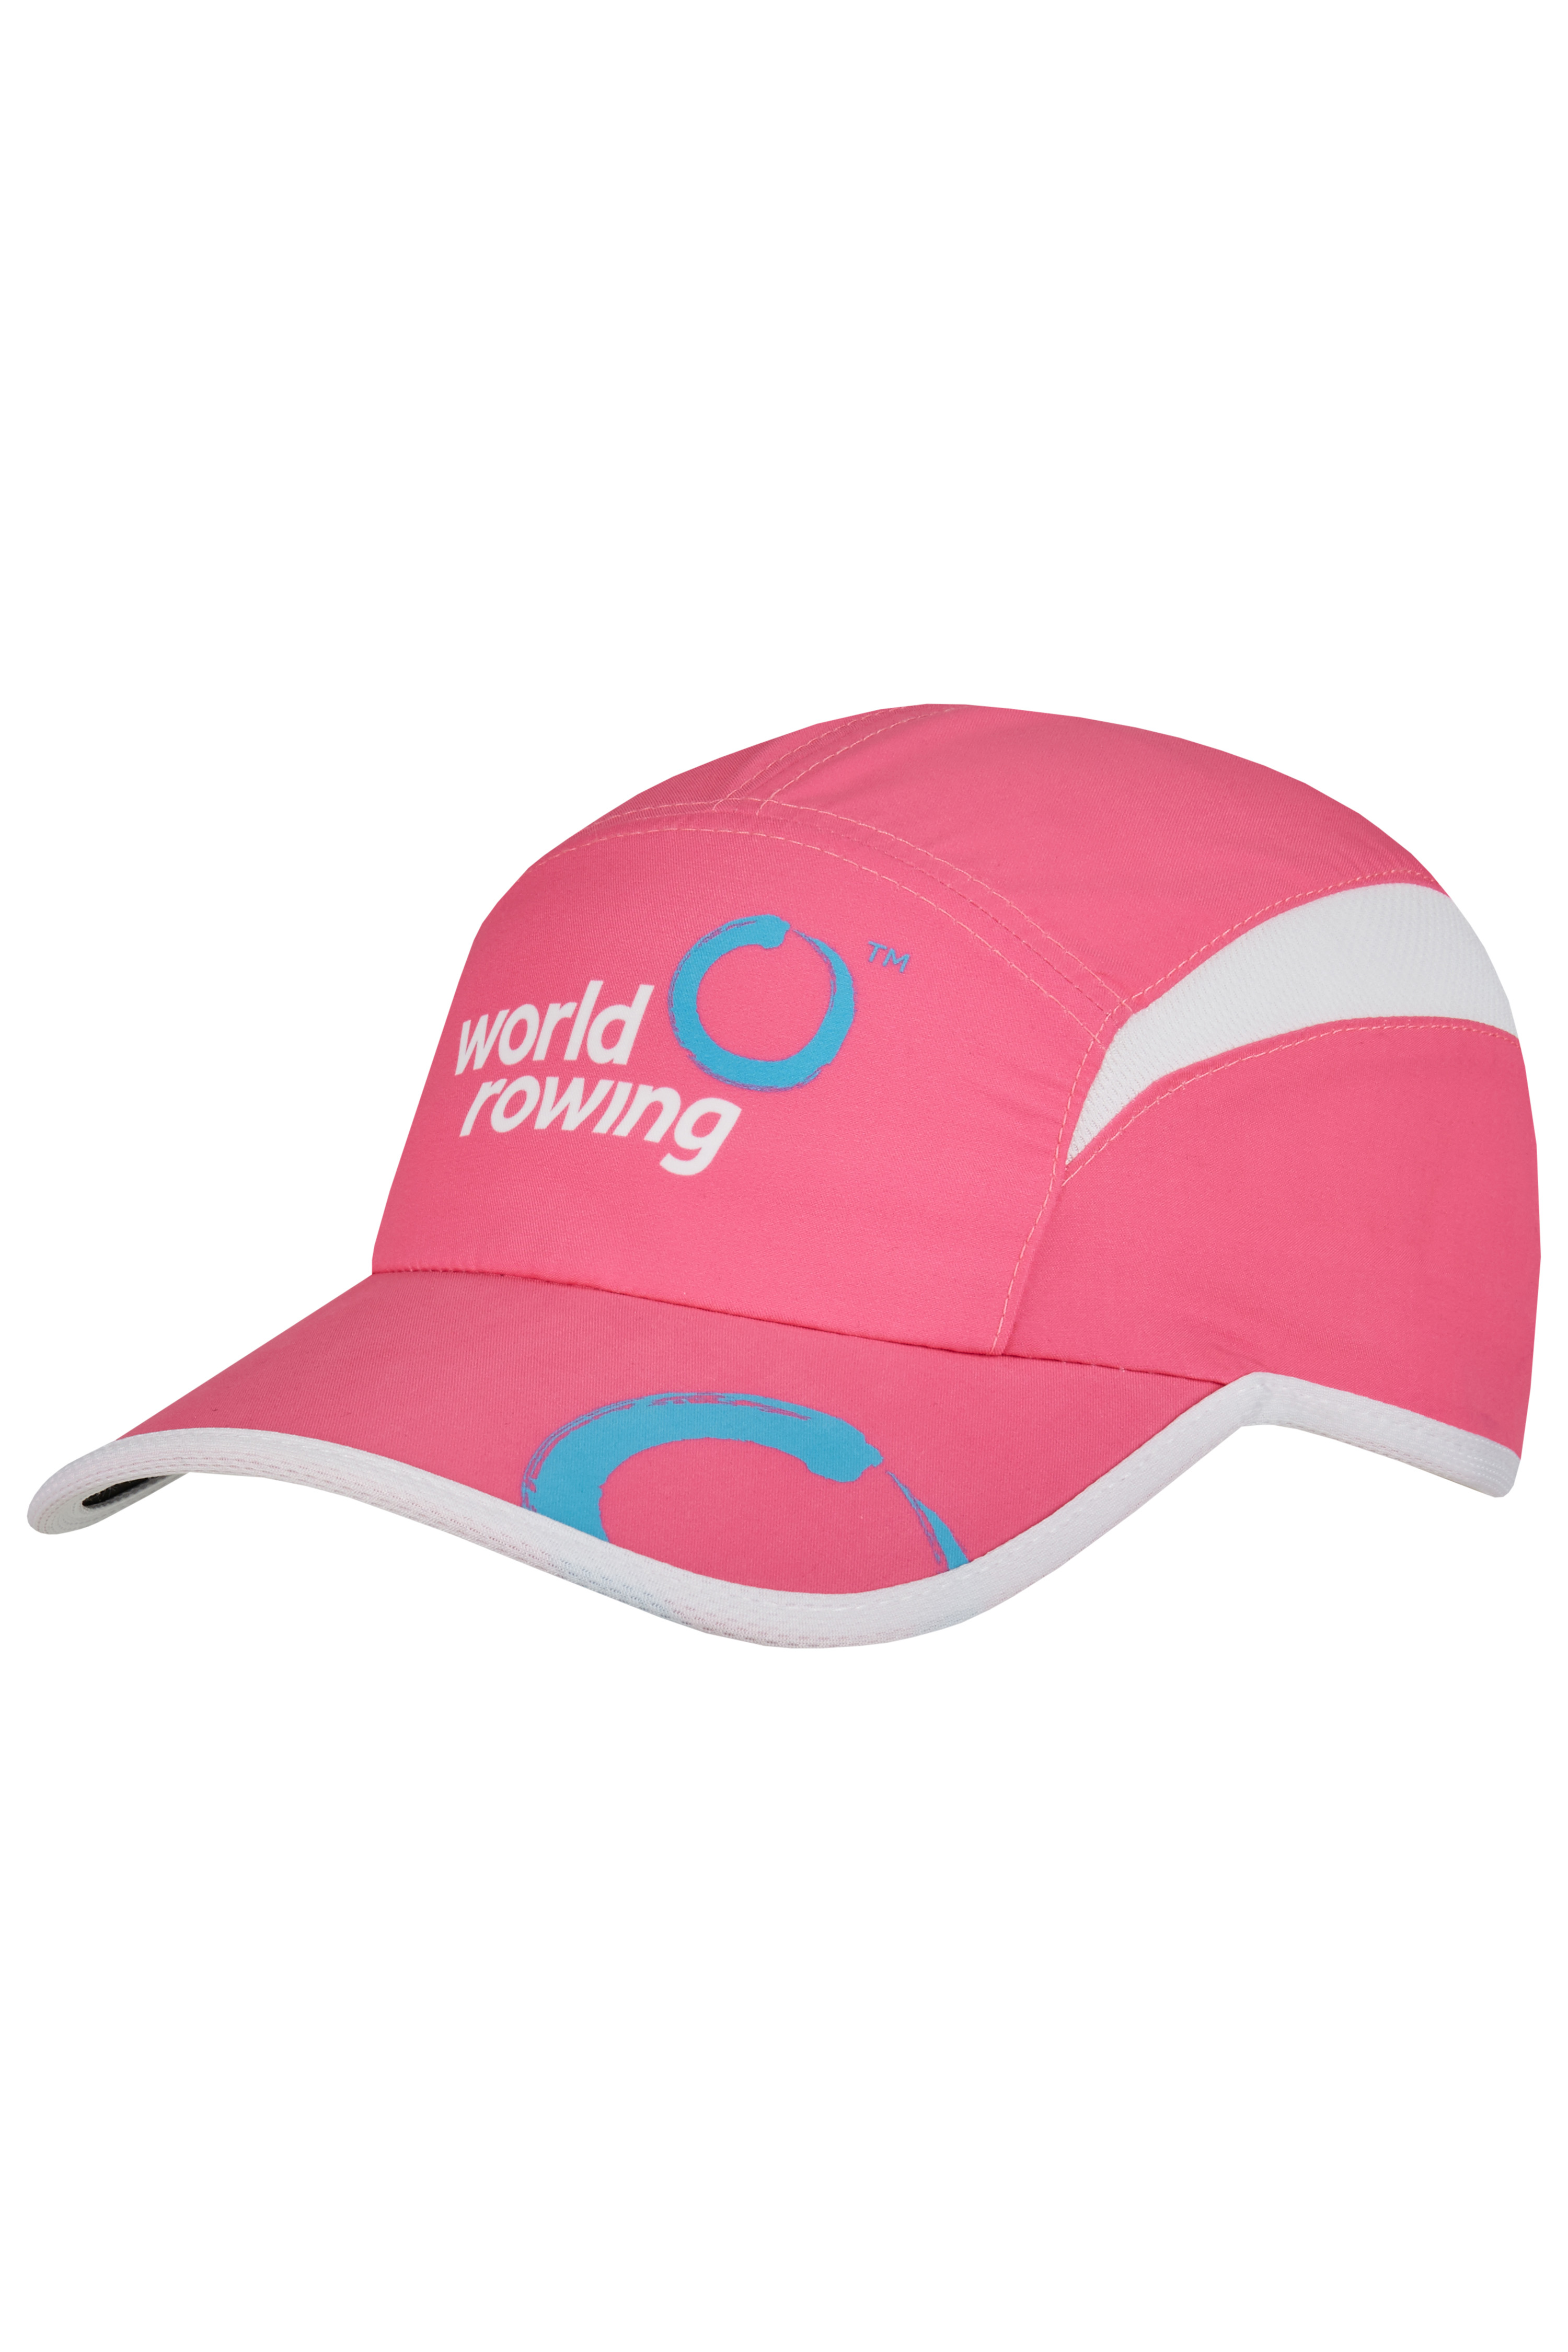 World Rowing Performance Cap - pink